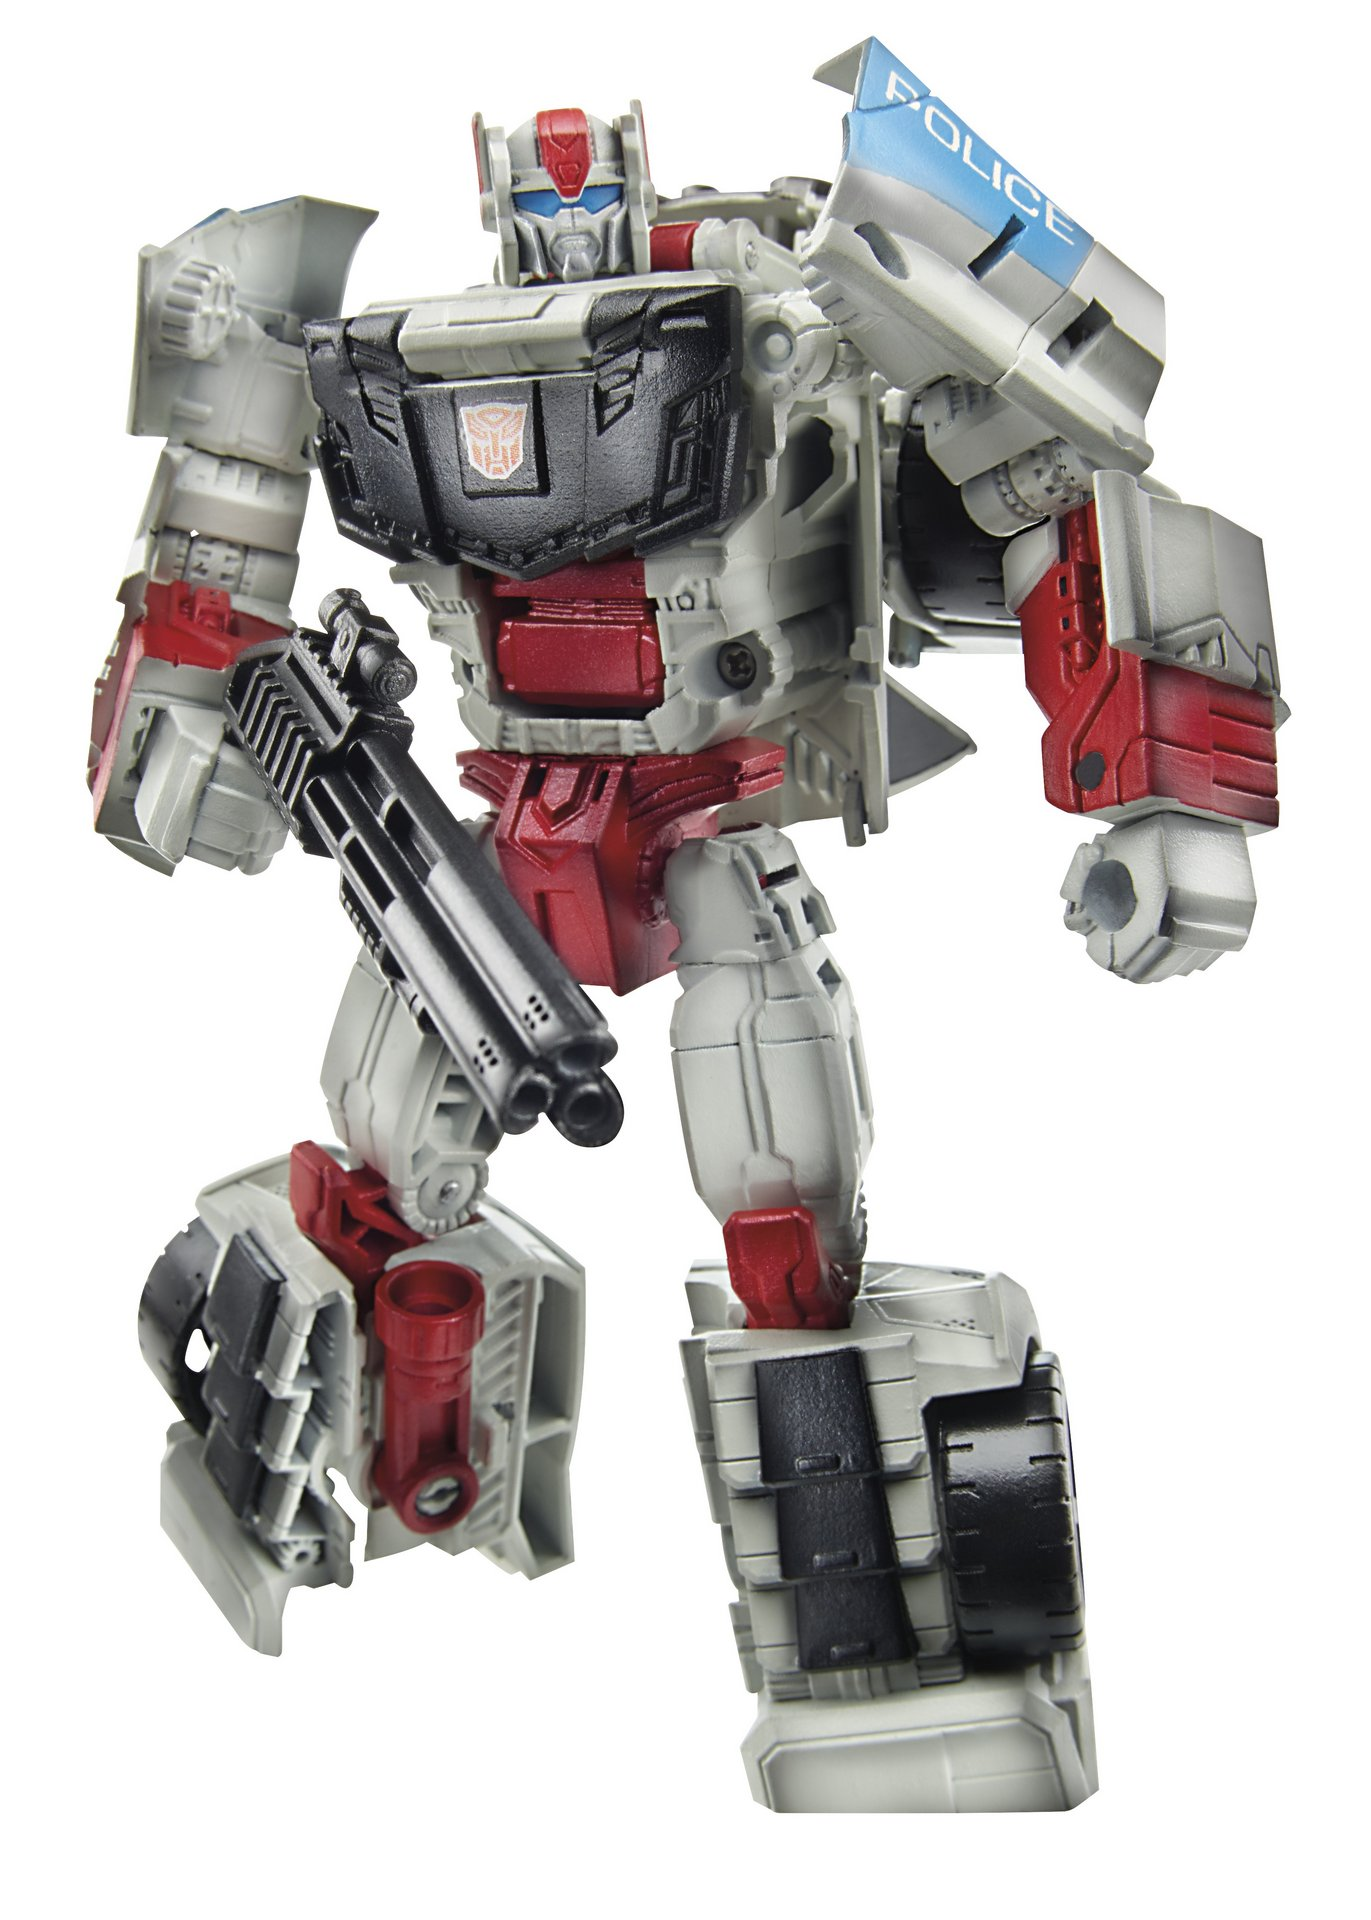 Car Jump Pack >> Combiner Wars Deluxe Wave 3 Official Images - the ...